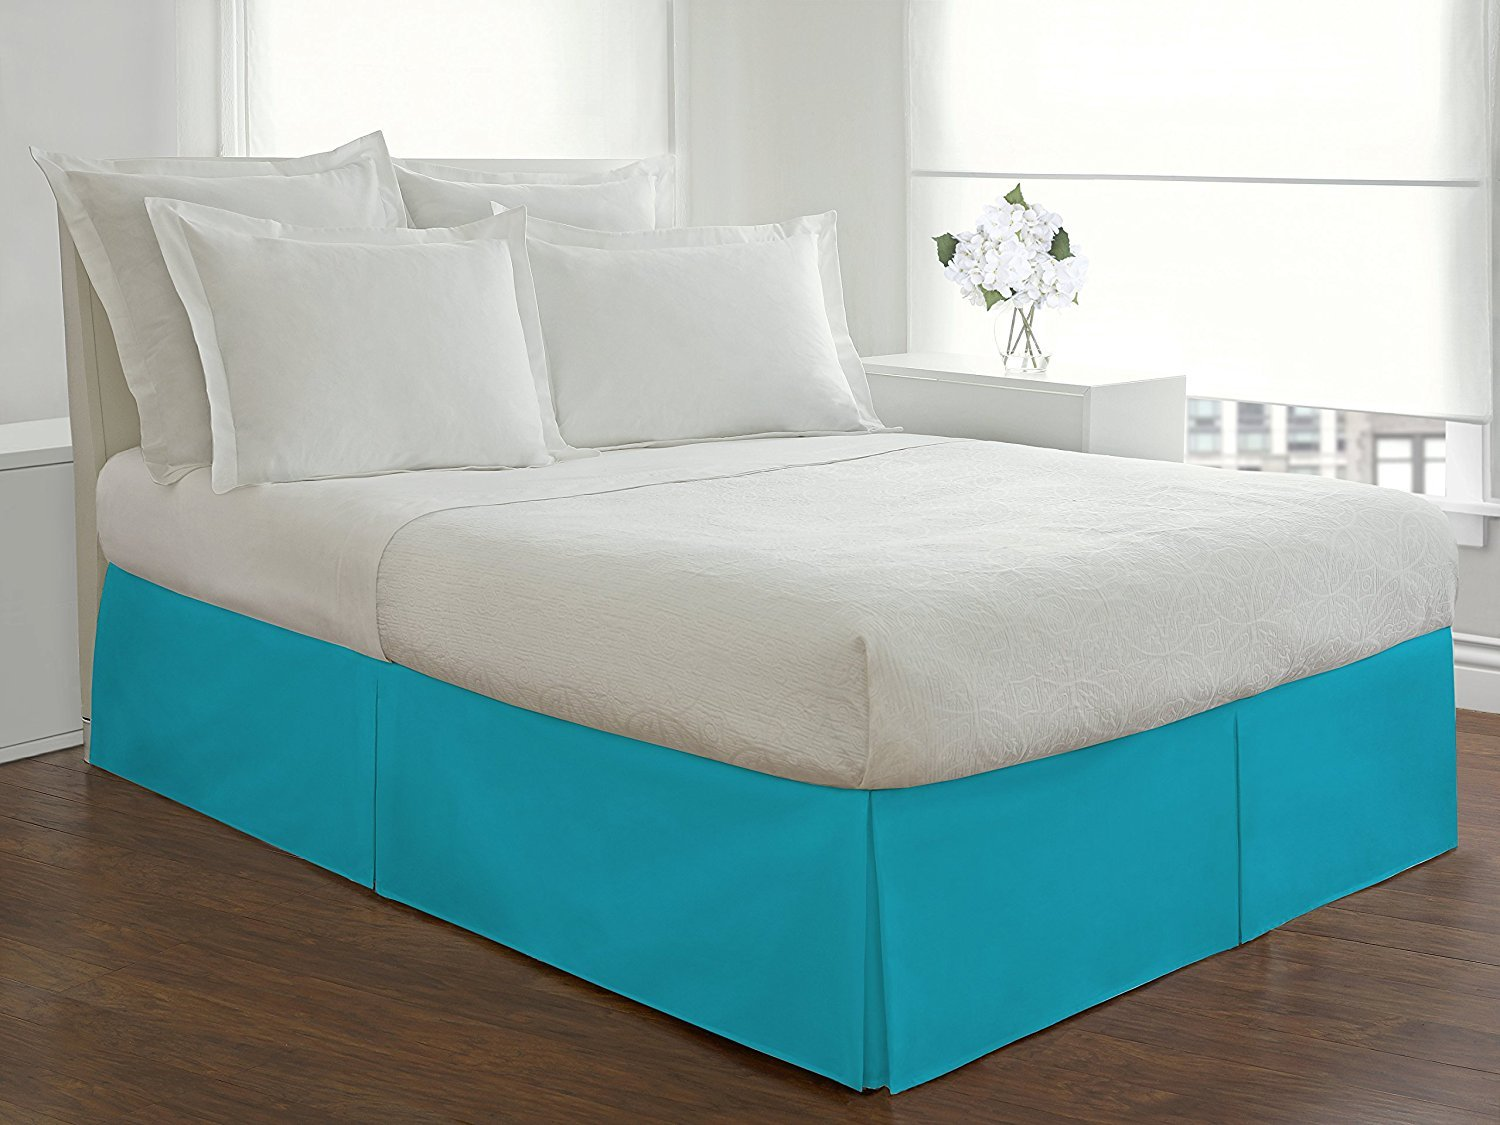 Solid Pattern Italian Luxury Hotel Collection Bed Skirt with 14-inch Drop Length - 100% Egyptian Cotton 400 Thread Count Quality Pleated Dust Ruffle Bed Skirt ( Queen, Turquoise )